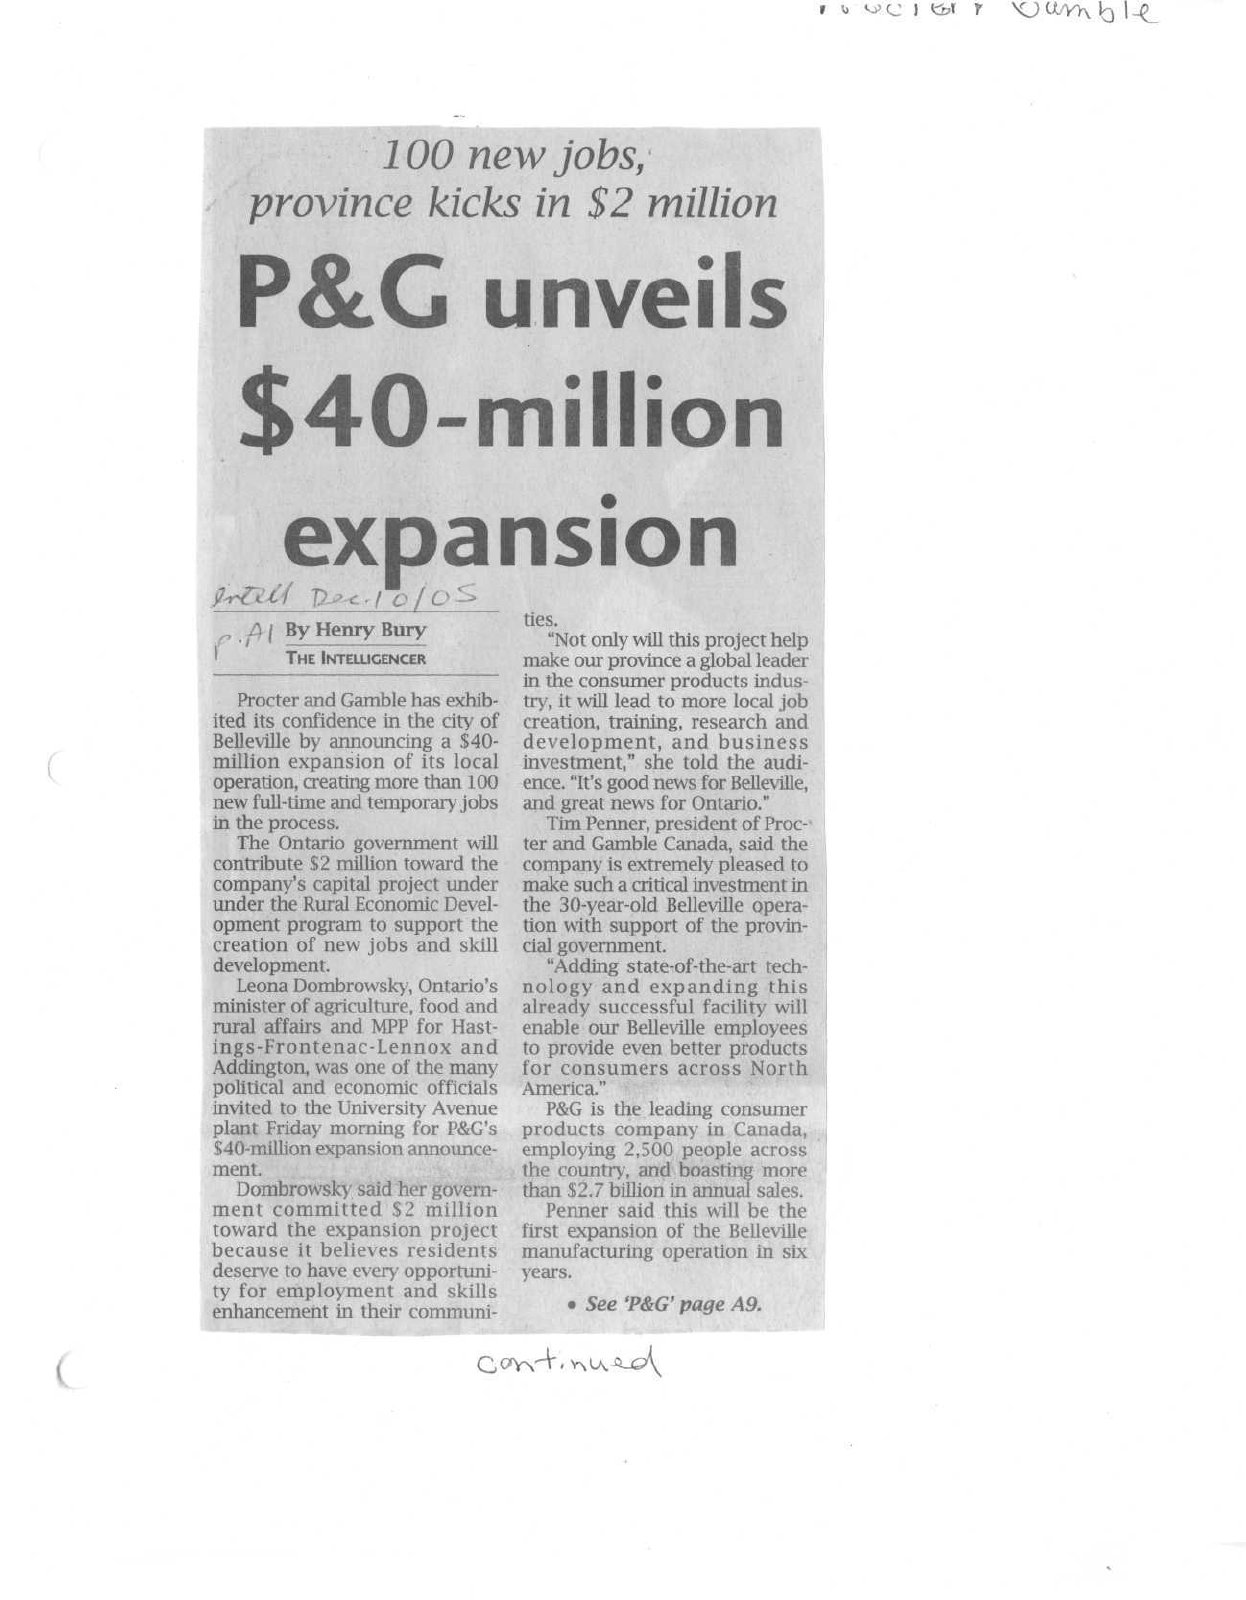 P&G unveils $40-million expansion